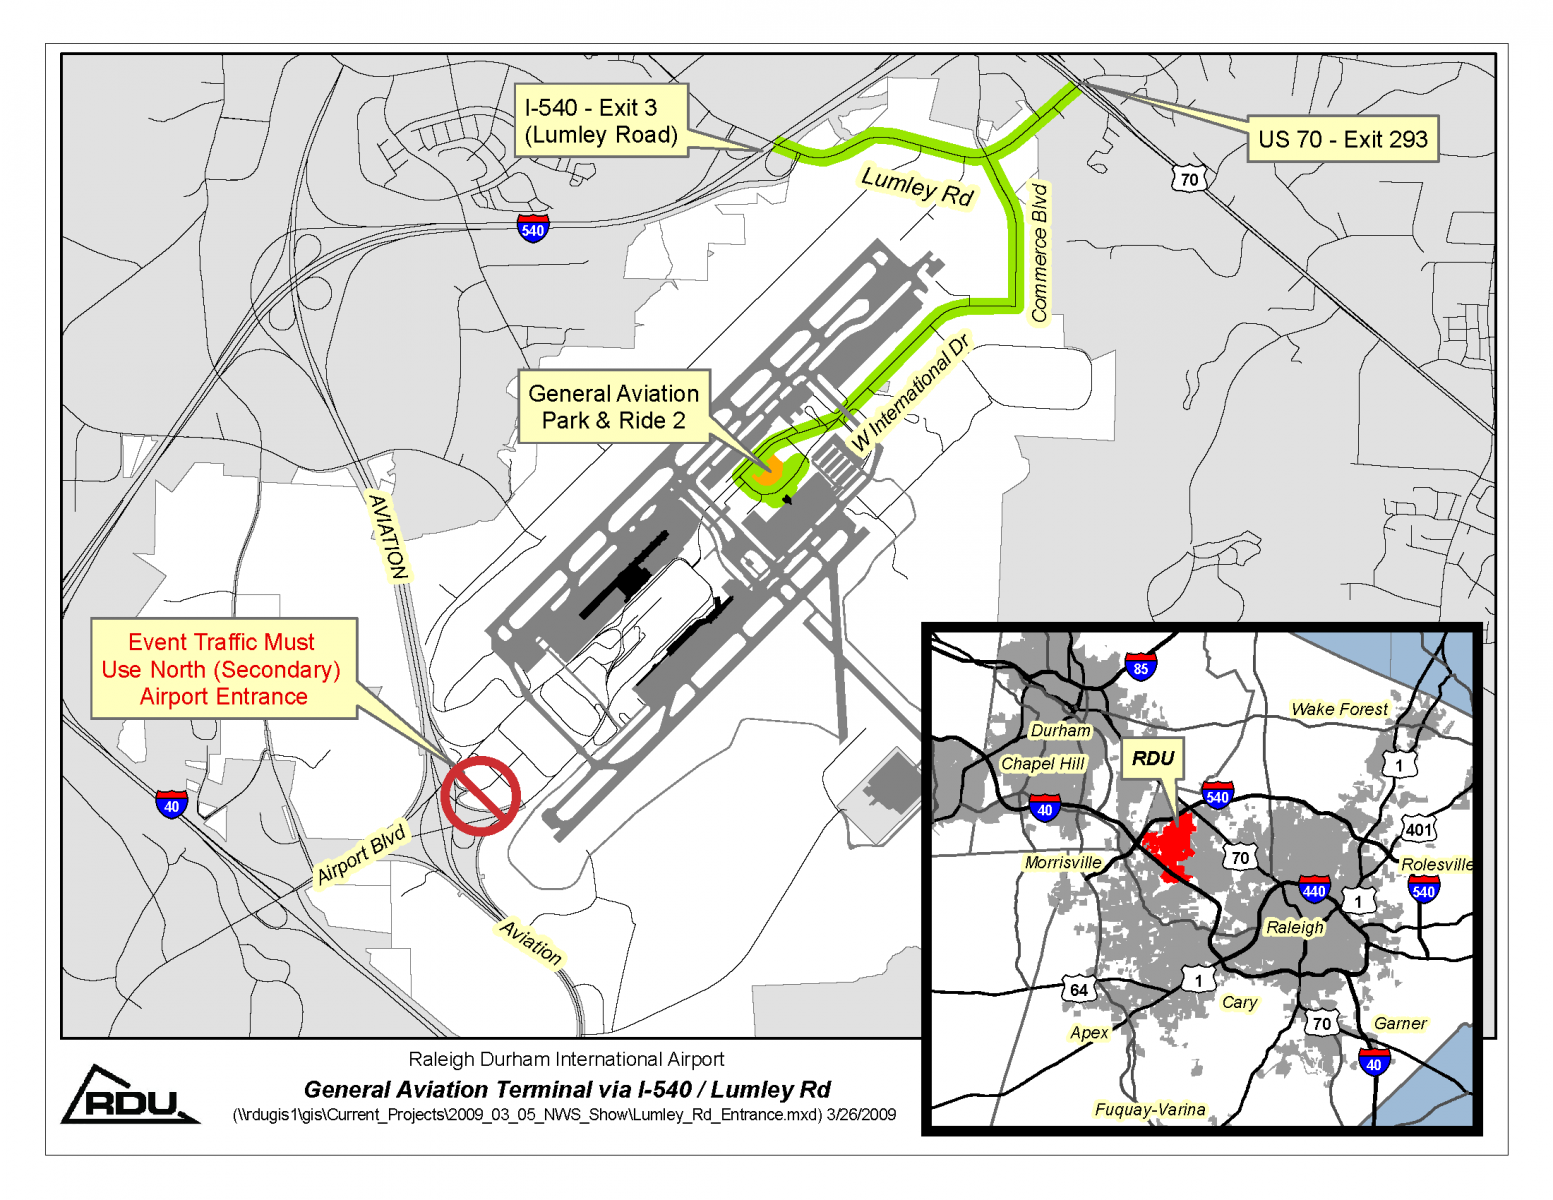 Raleigh Durham Airport Fire Rescue   Maps   Diagrams moreover RDU   Raleigh Durham  Raleigh Durham International Airport Current moreover  moreover 2017 Hurricane Awareness Tour at RDU   Location further  in addition Near Raleigh North Carolina  Durham North Carolina  Richmond additionally  together with Raleigh–Durham International Airport   Wikipedia likewise Research Triangle   Wikipedia in addition Go OnDemand Shuttles   GoTriangle besides FedEx Ship Center   Raleigh  NC   1220 International Dr 27623 together with Map of Holiday Inn Express Raleigh Durham Airport  Morrisville moreover Map Of Raleigh Durham Airport RDU Terminal – SmartSync together with Raleigh Durham International Airport RDU North Carolina Bage furthermore  together with Large Airport Map Raleigh Durham North Carolina Area – customtshirts. on raleigh durham airport map